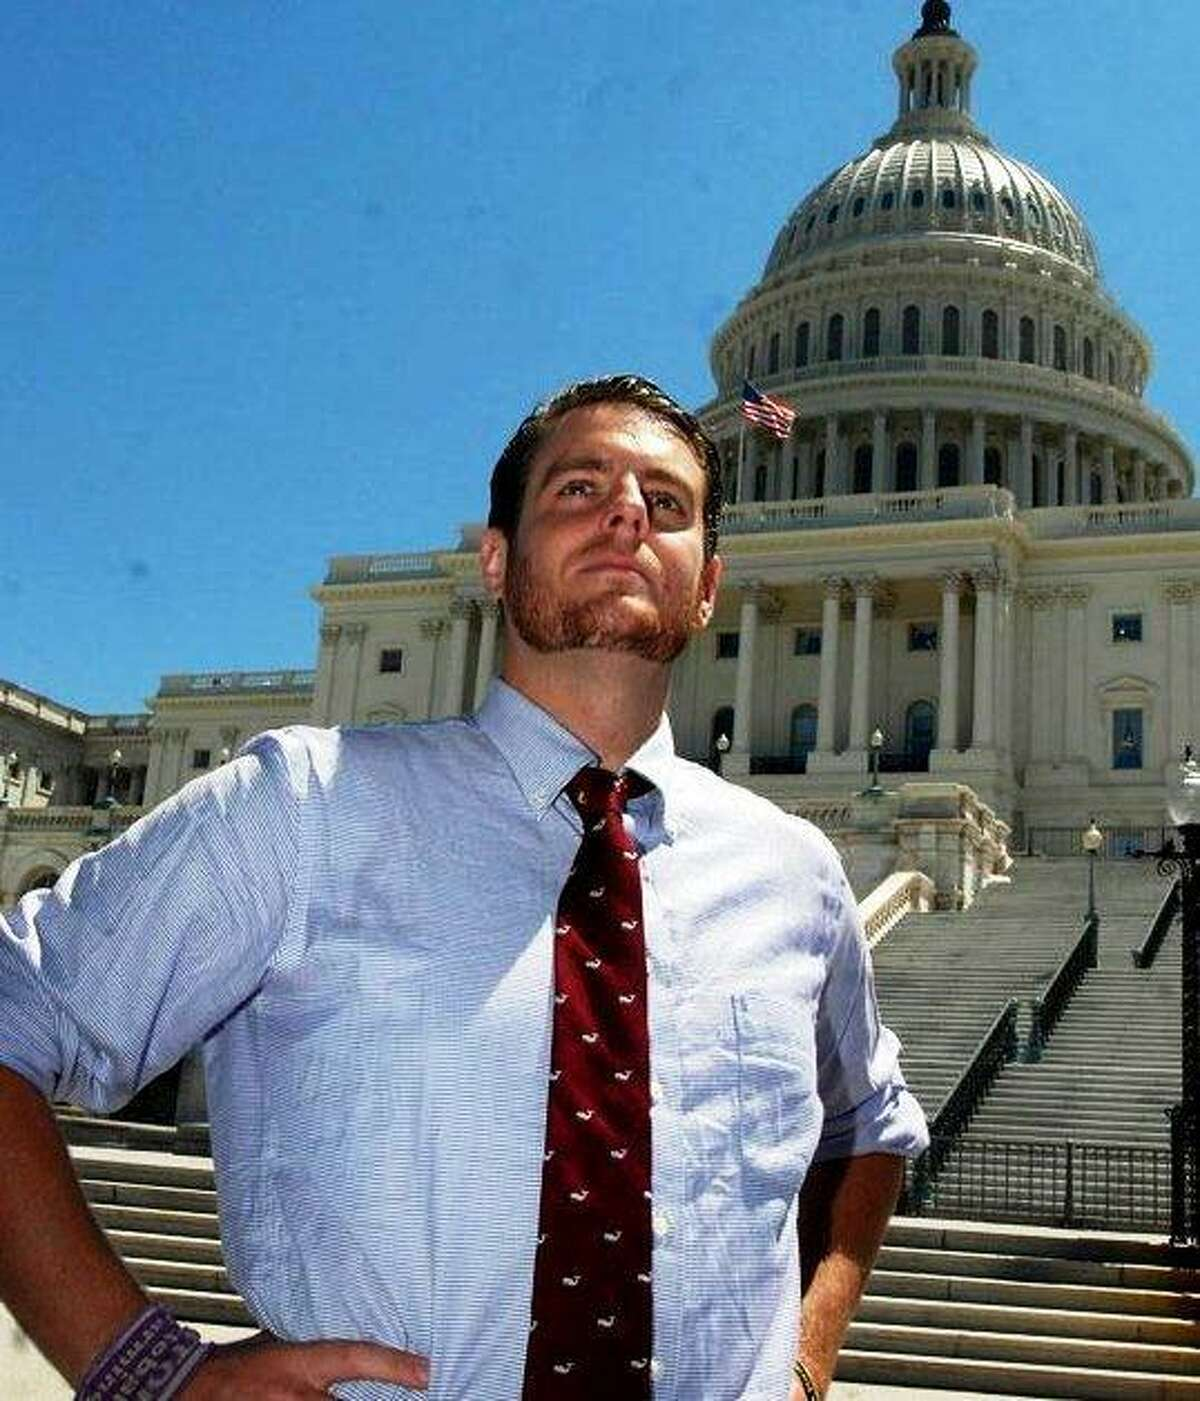 Colin Bennett is seeking the 2nd Congressional District seat as a Green Party candidate.